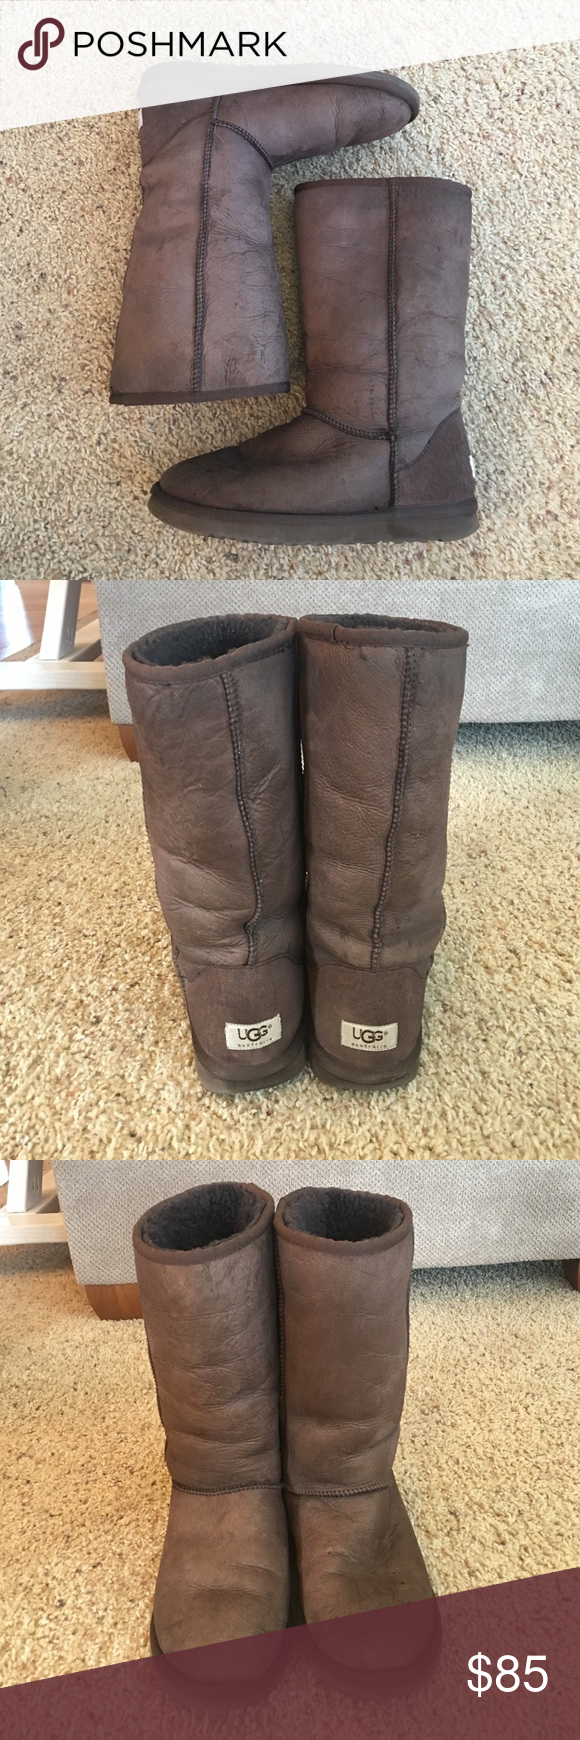 Uggs Classic short uggs in brown size 9. Good loved condition. Always washed and water proofed with ugg cleaners. No tears. Small stain on the toe. Tons of life left. They are authentic I purchased them from neiman marcus. Will consider offers. UGG Shoes Winter & Rain Boots